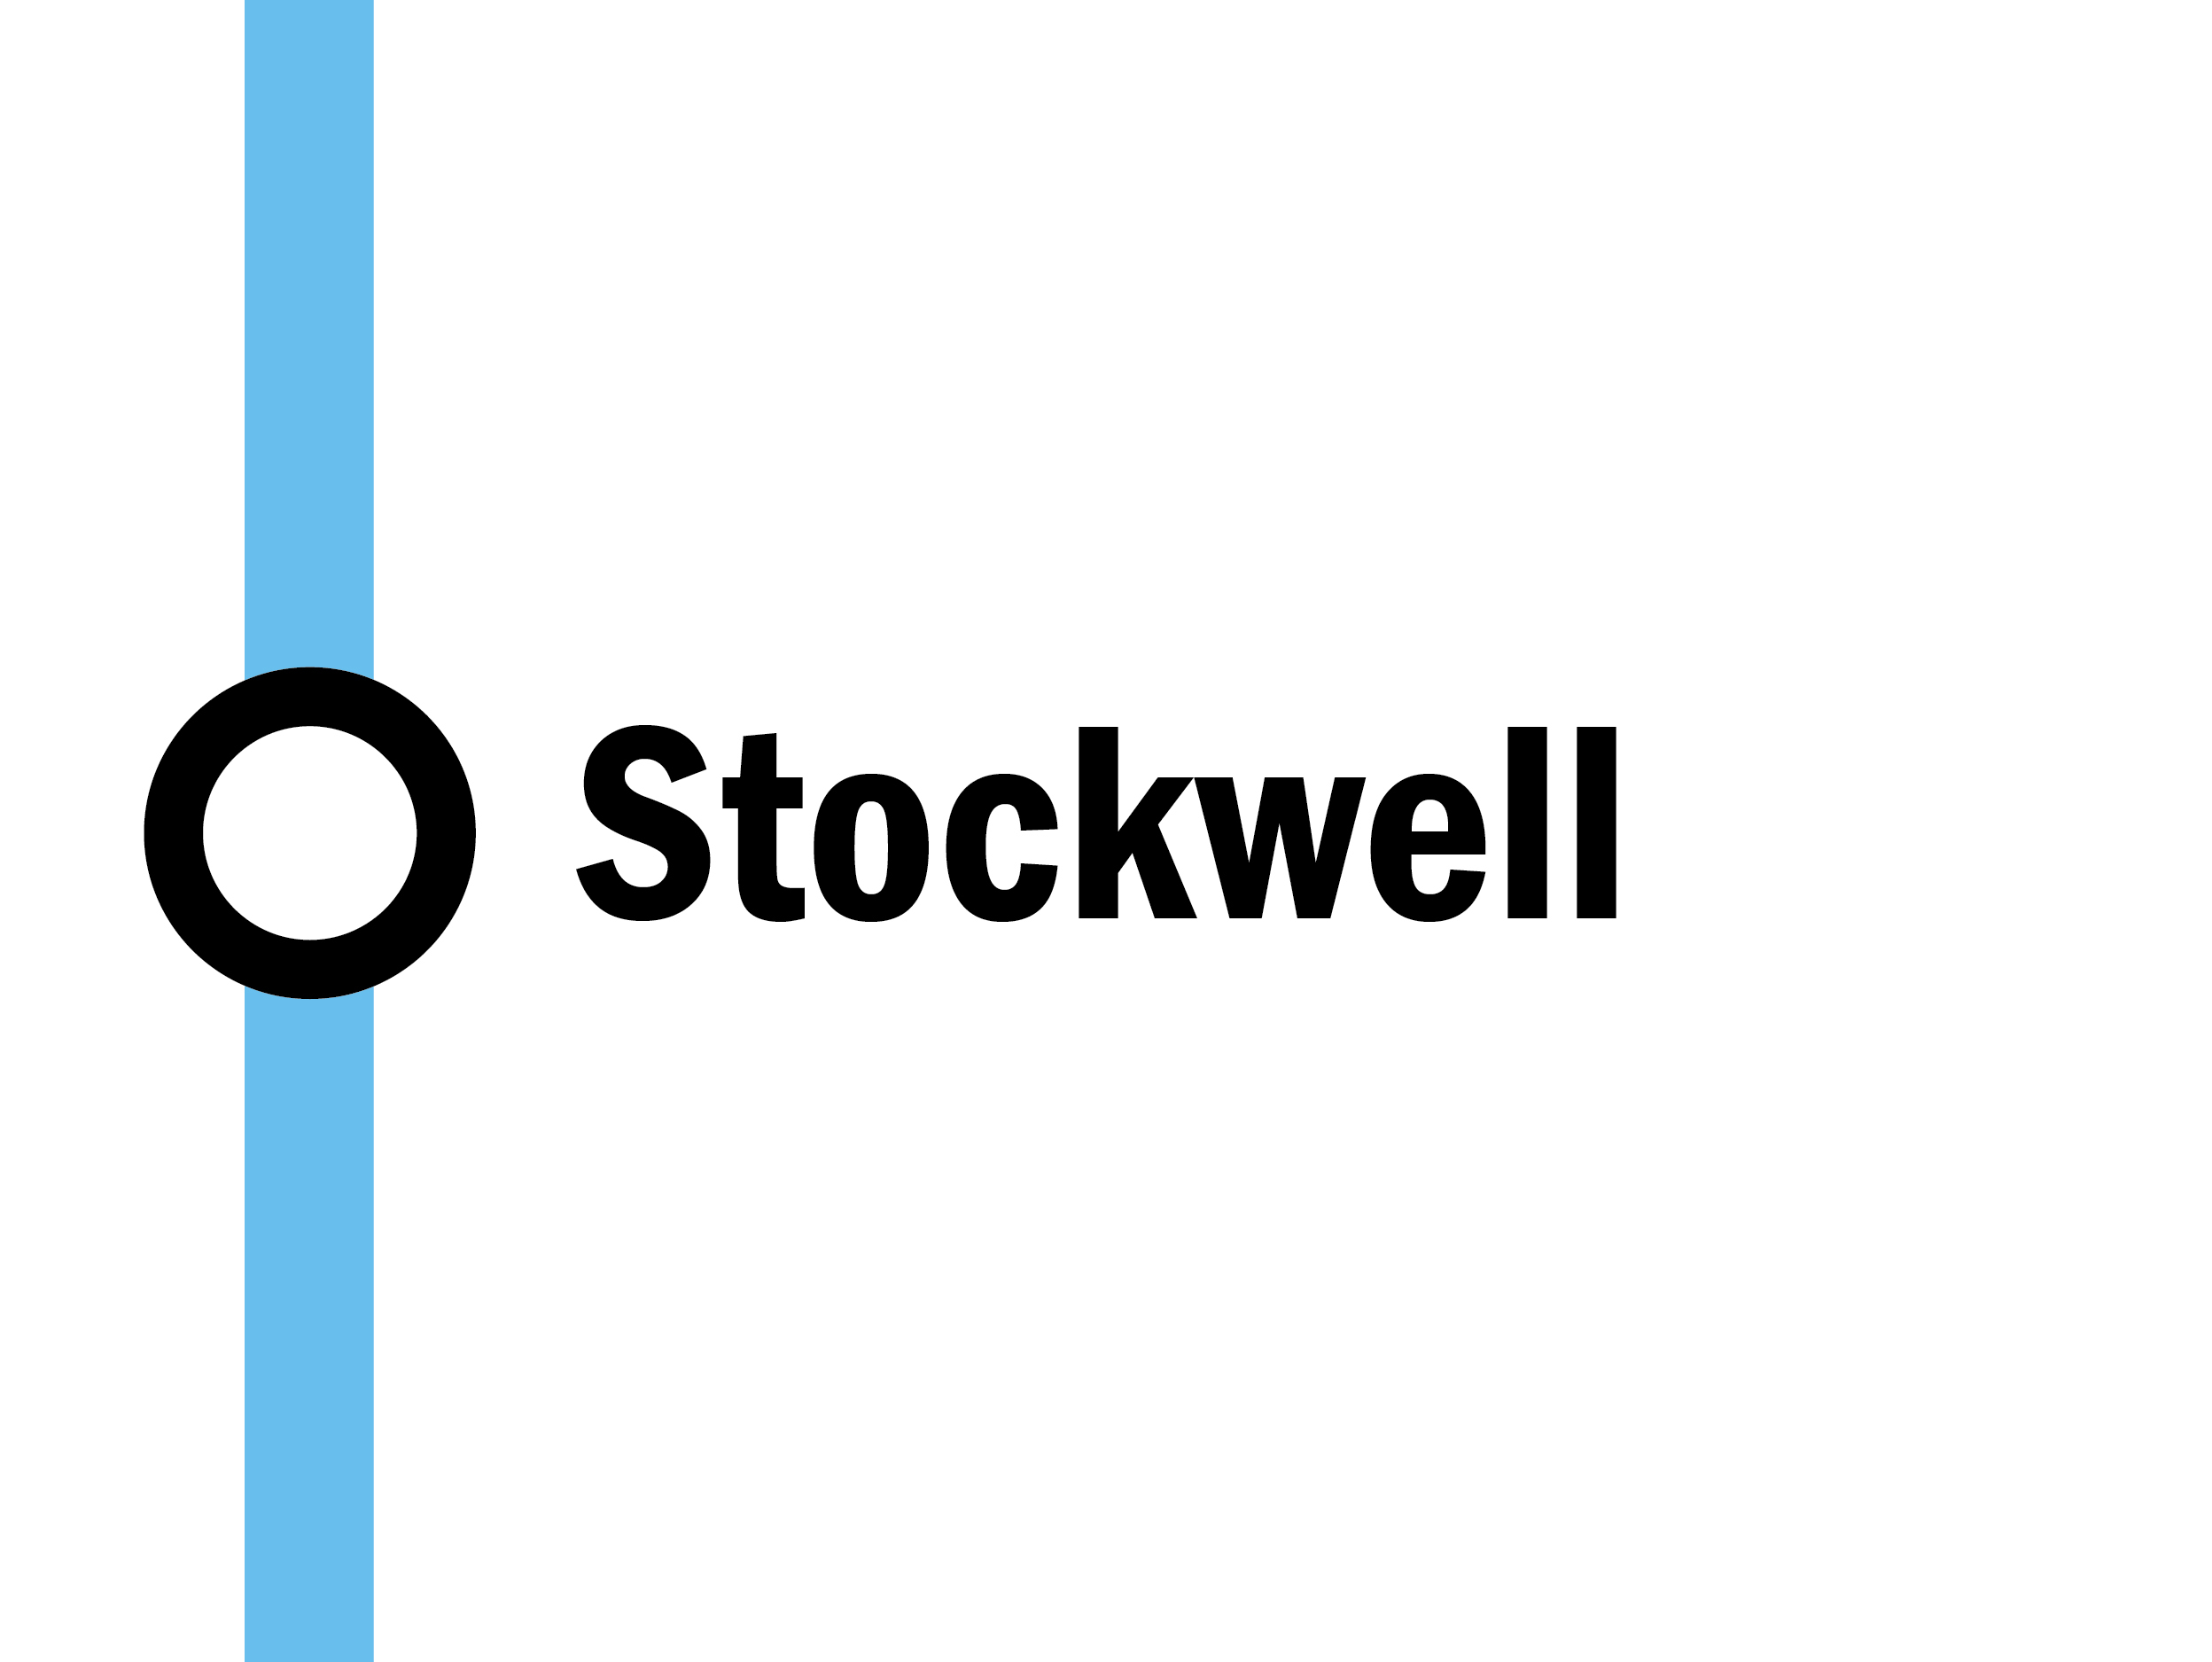 Night tube: Stockwell